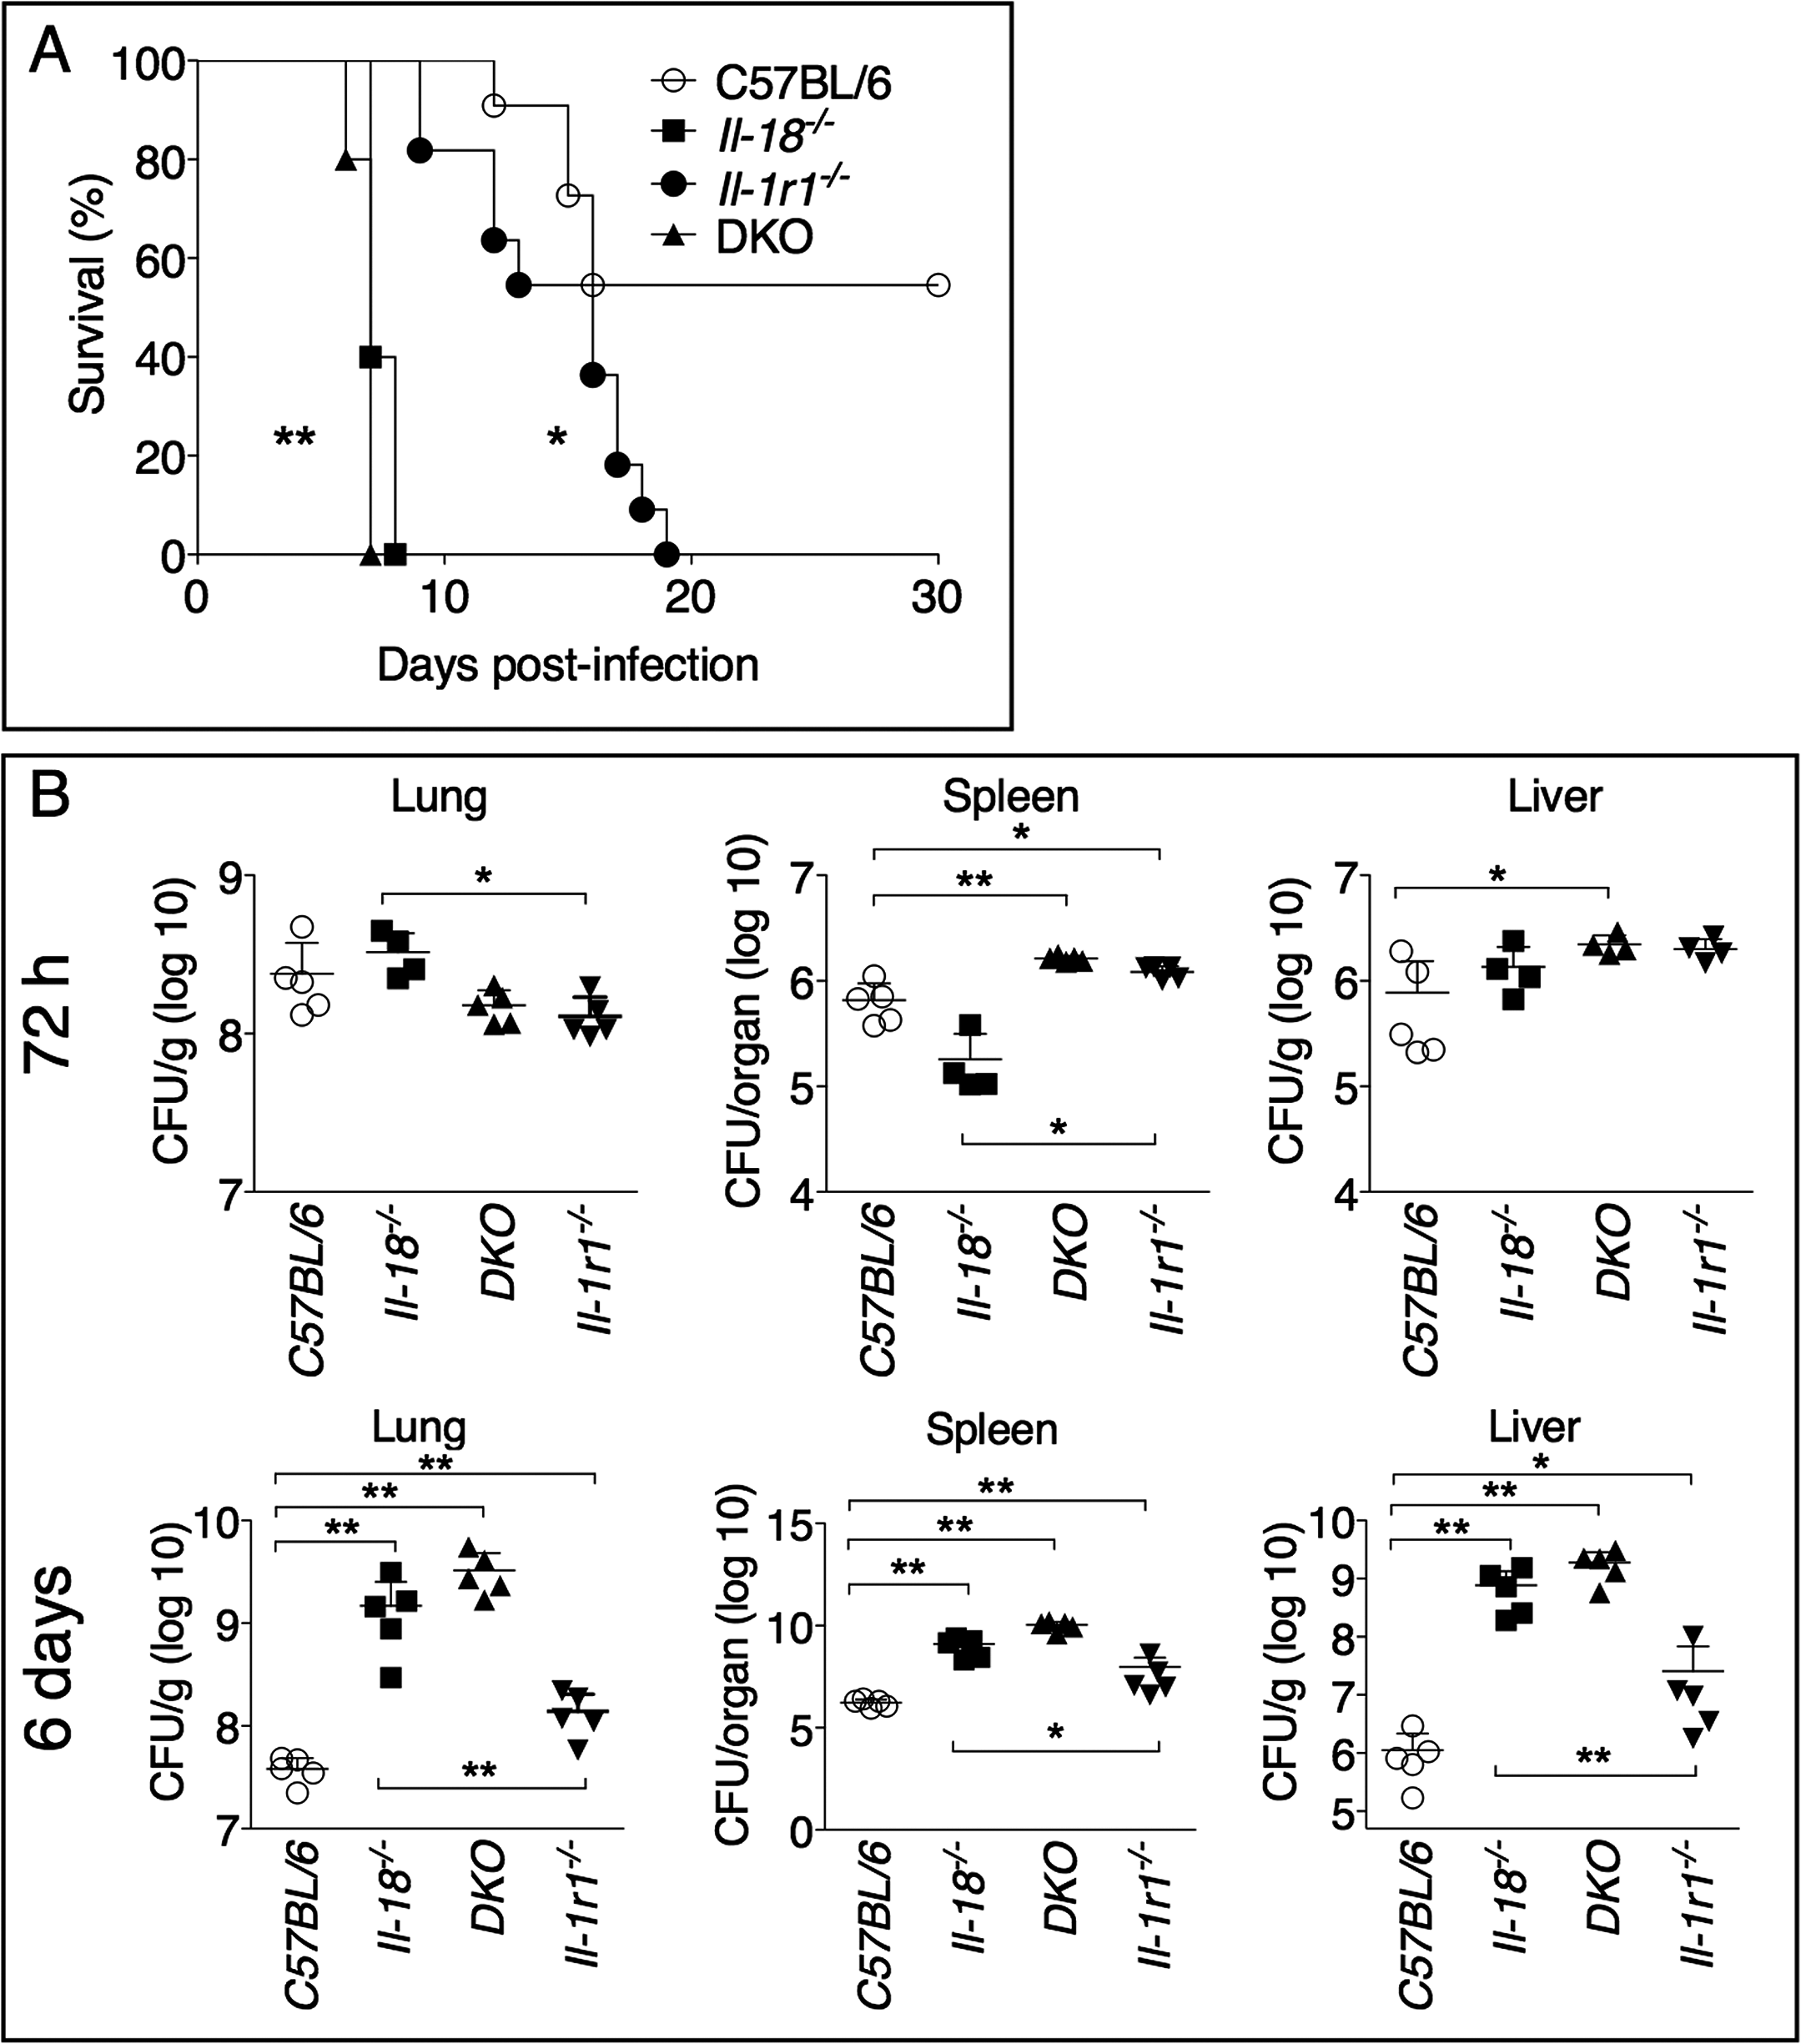 IL-1RI and IL-18-deficient mice are more susceptible to lung infection with <i>Ft</i> LVS.